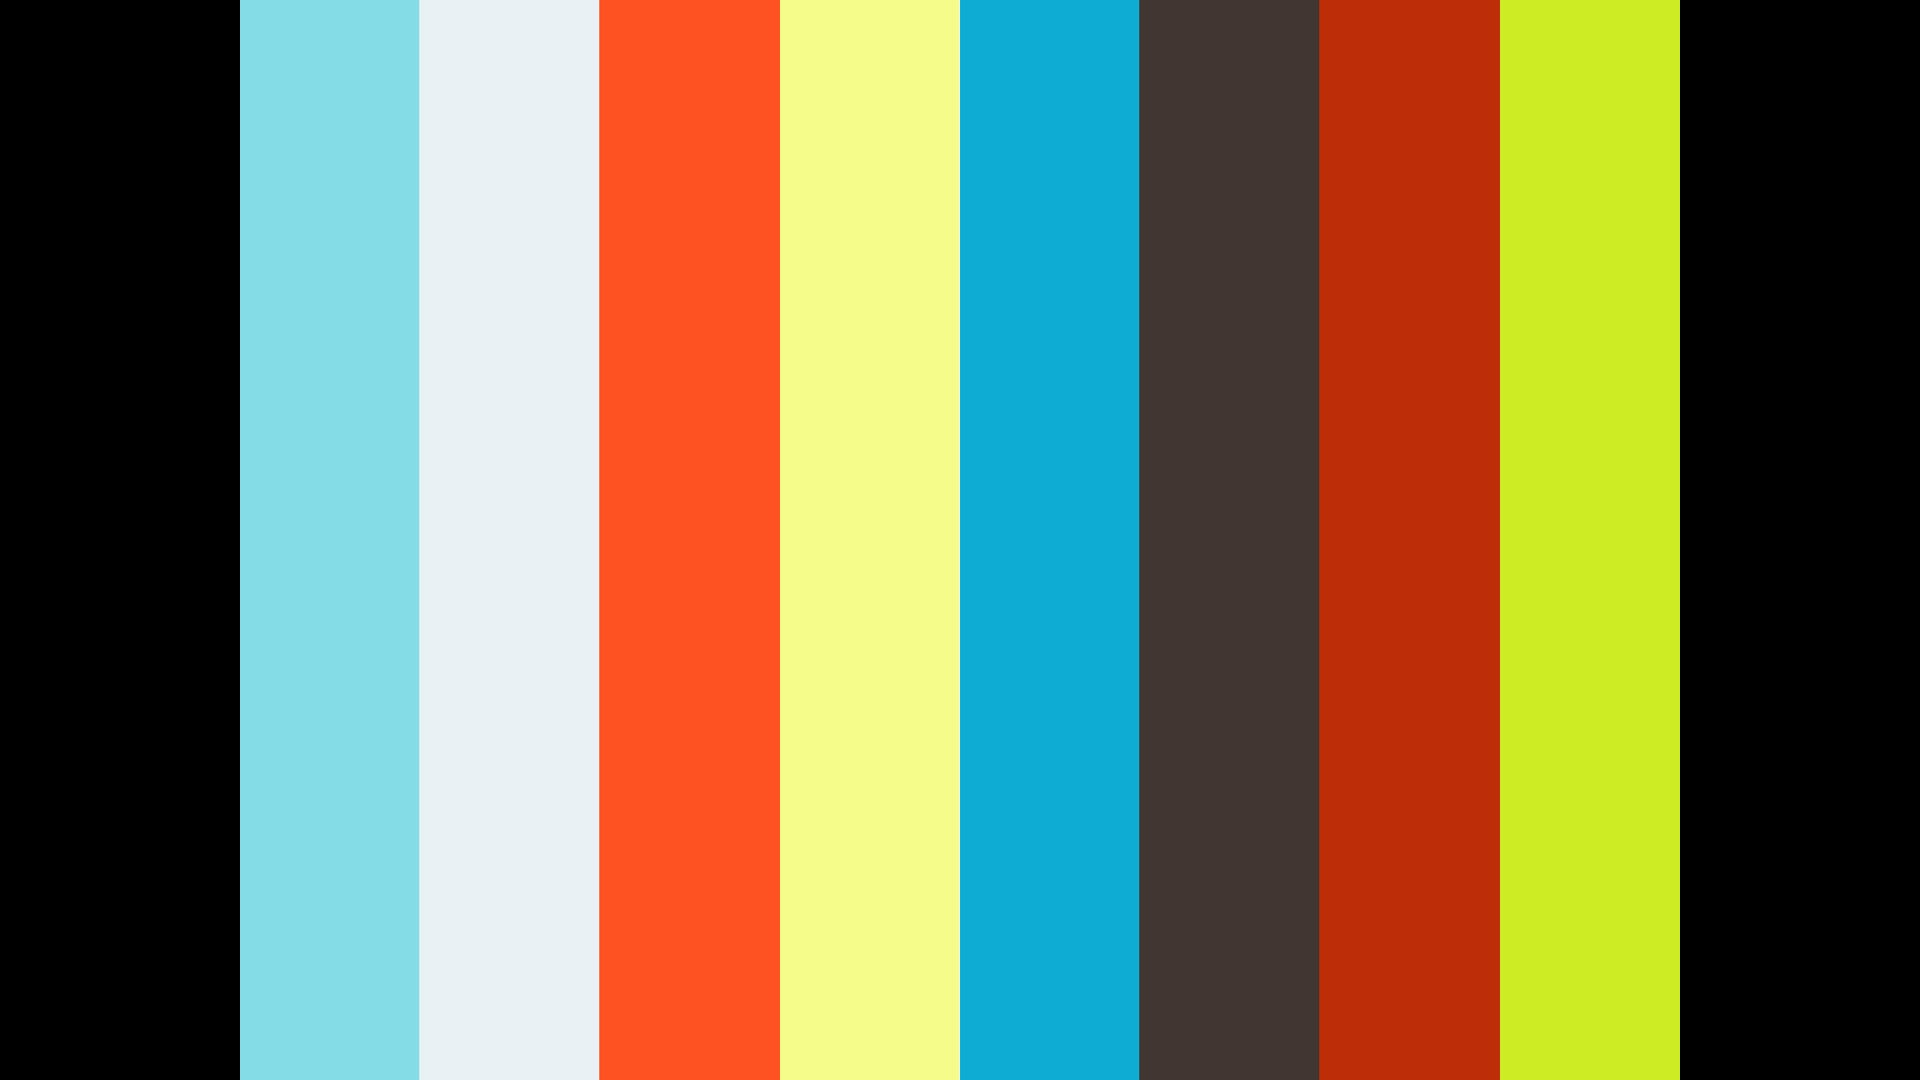 LIGHT OF MAASAI